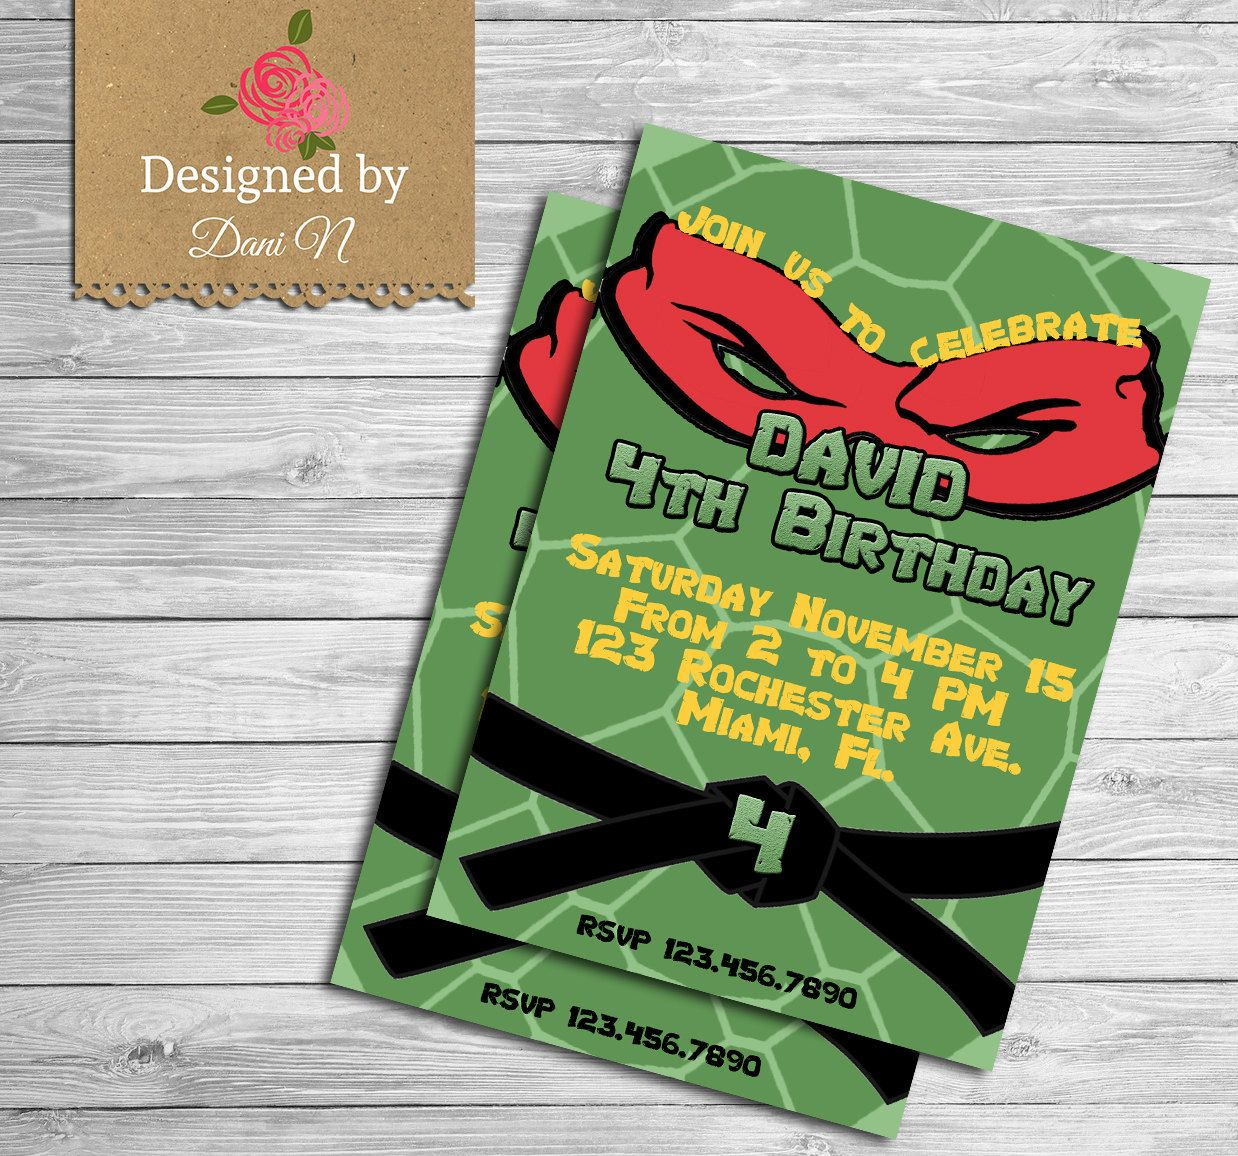 Tmnt Party Invitations Cloveranddotcom three photo christmas cards ...